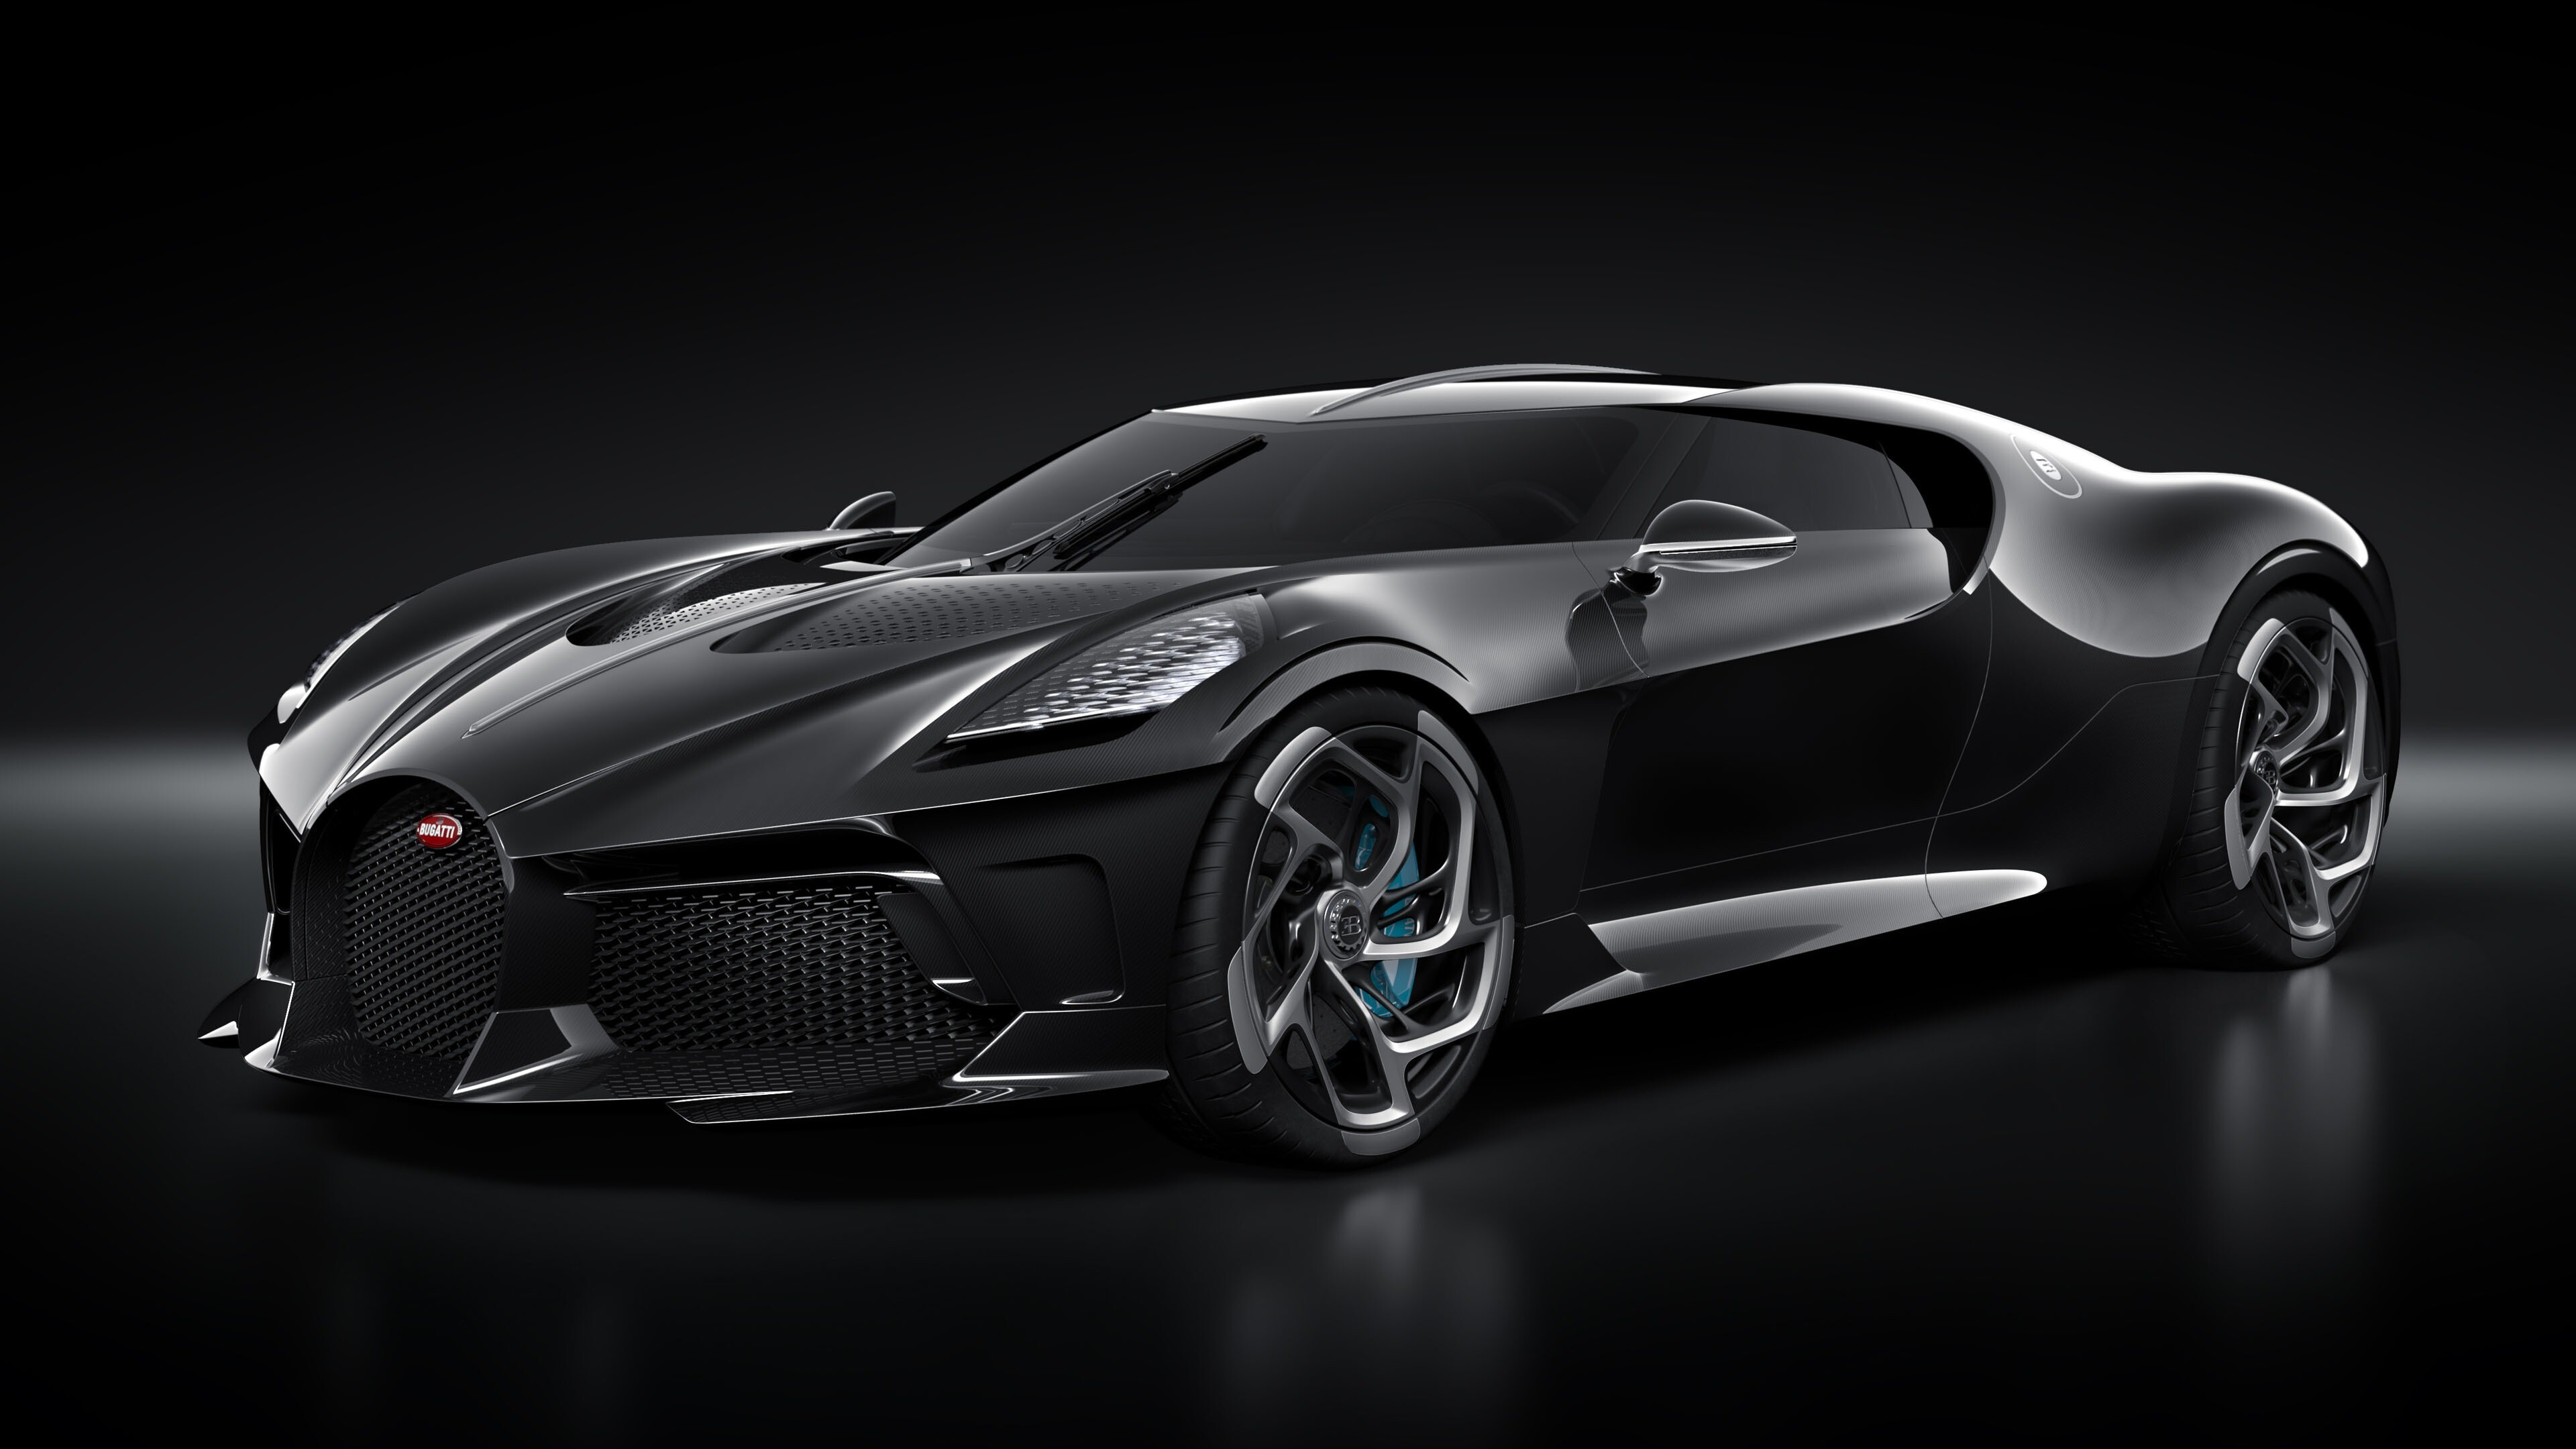 2019 Bugatti La Voiture Noire 4k Car Wallpaper Hd Wallpapers